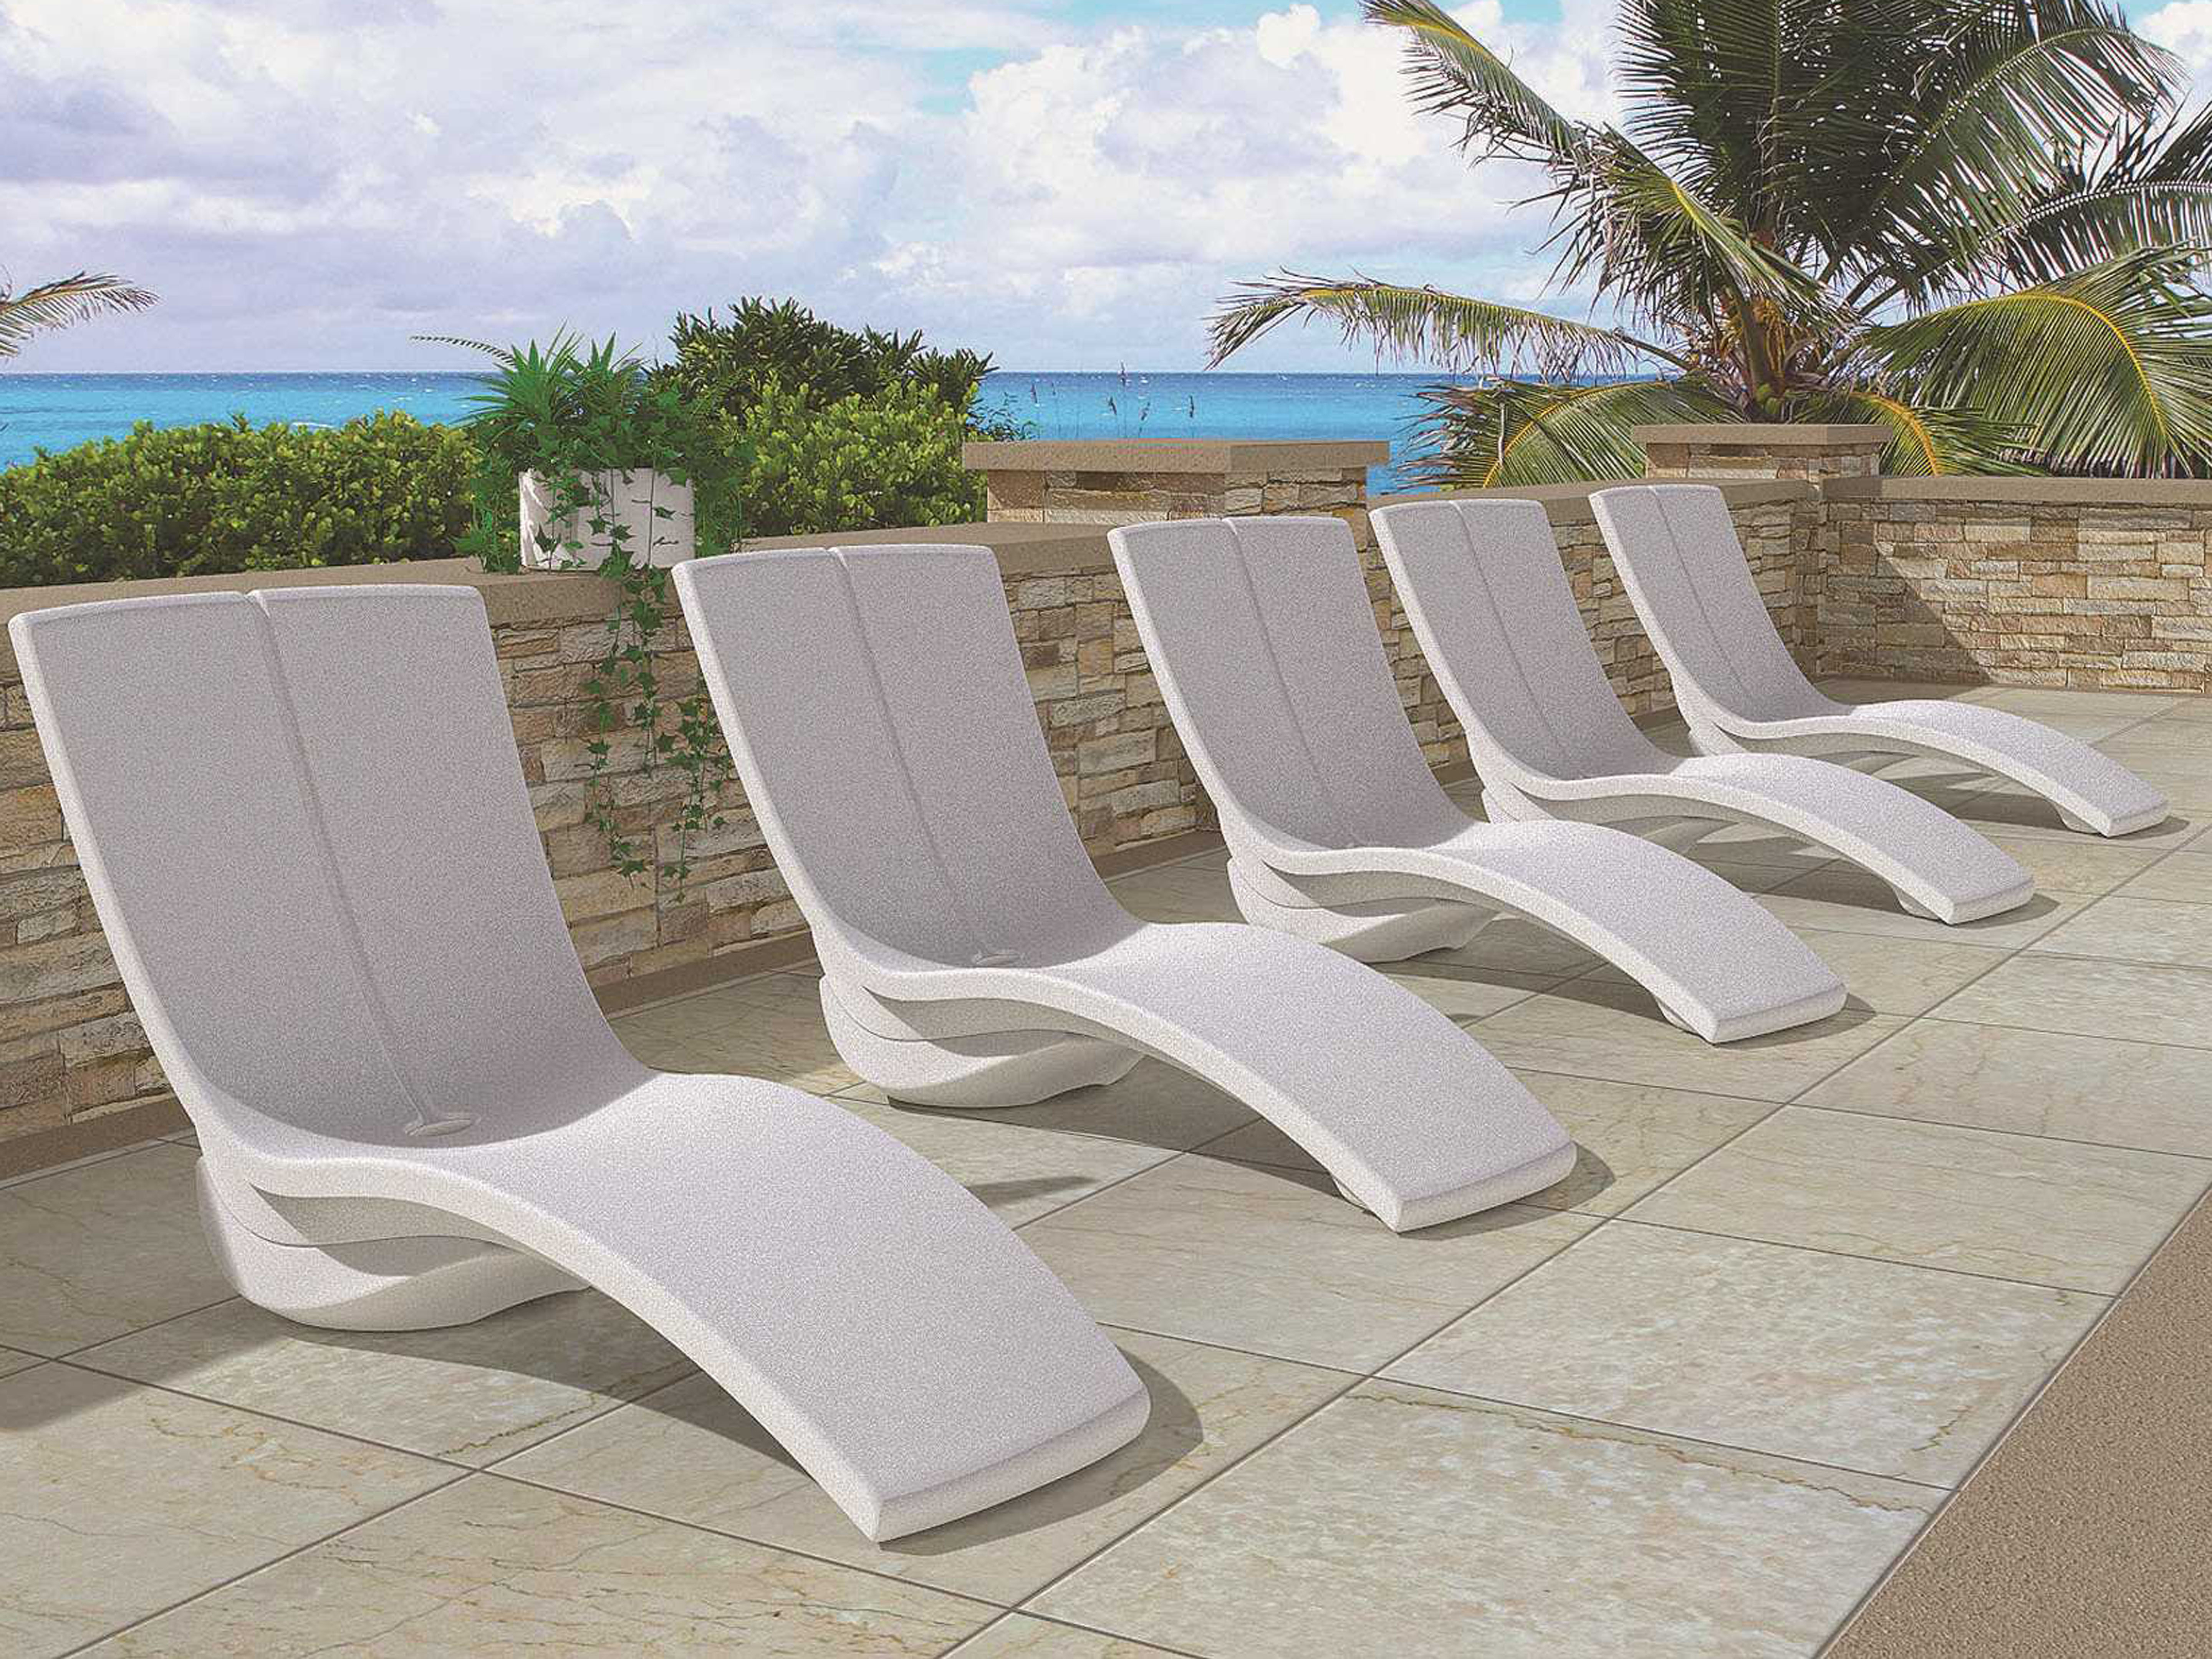 Curved Folding Chaise Loungers Intended For Famous Tropitone Curve Recycled Plastic Lounge Set (View 25 of 25)